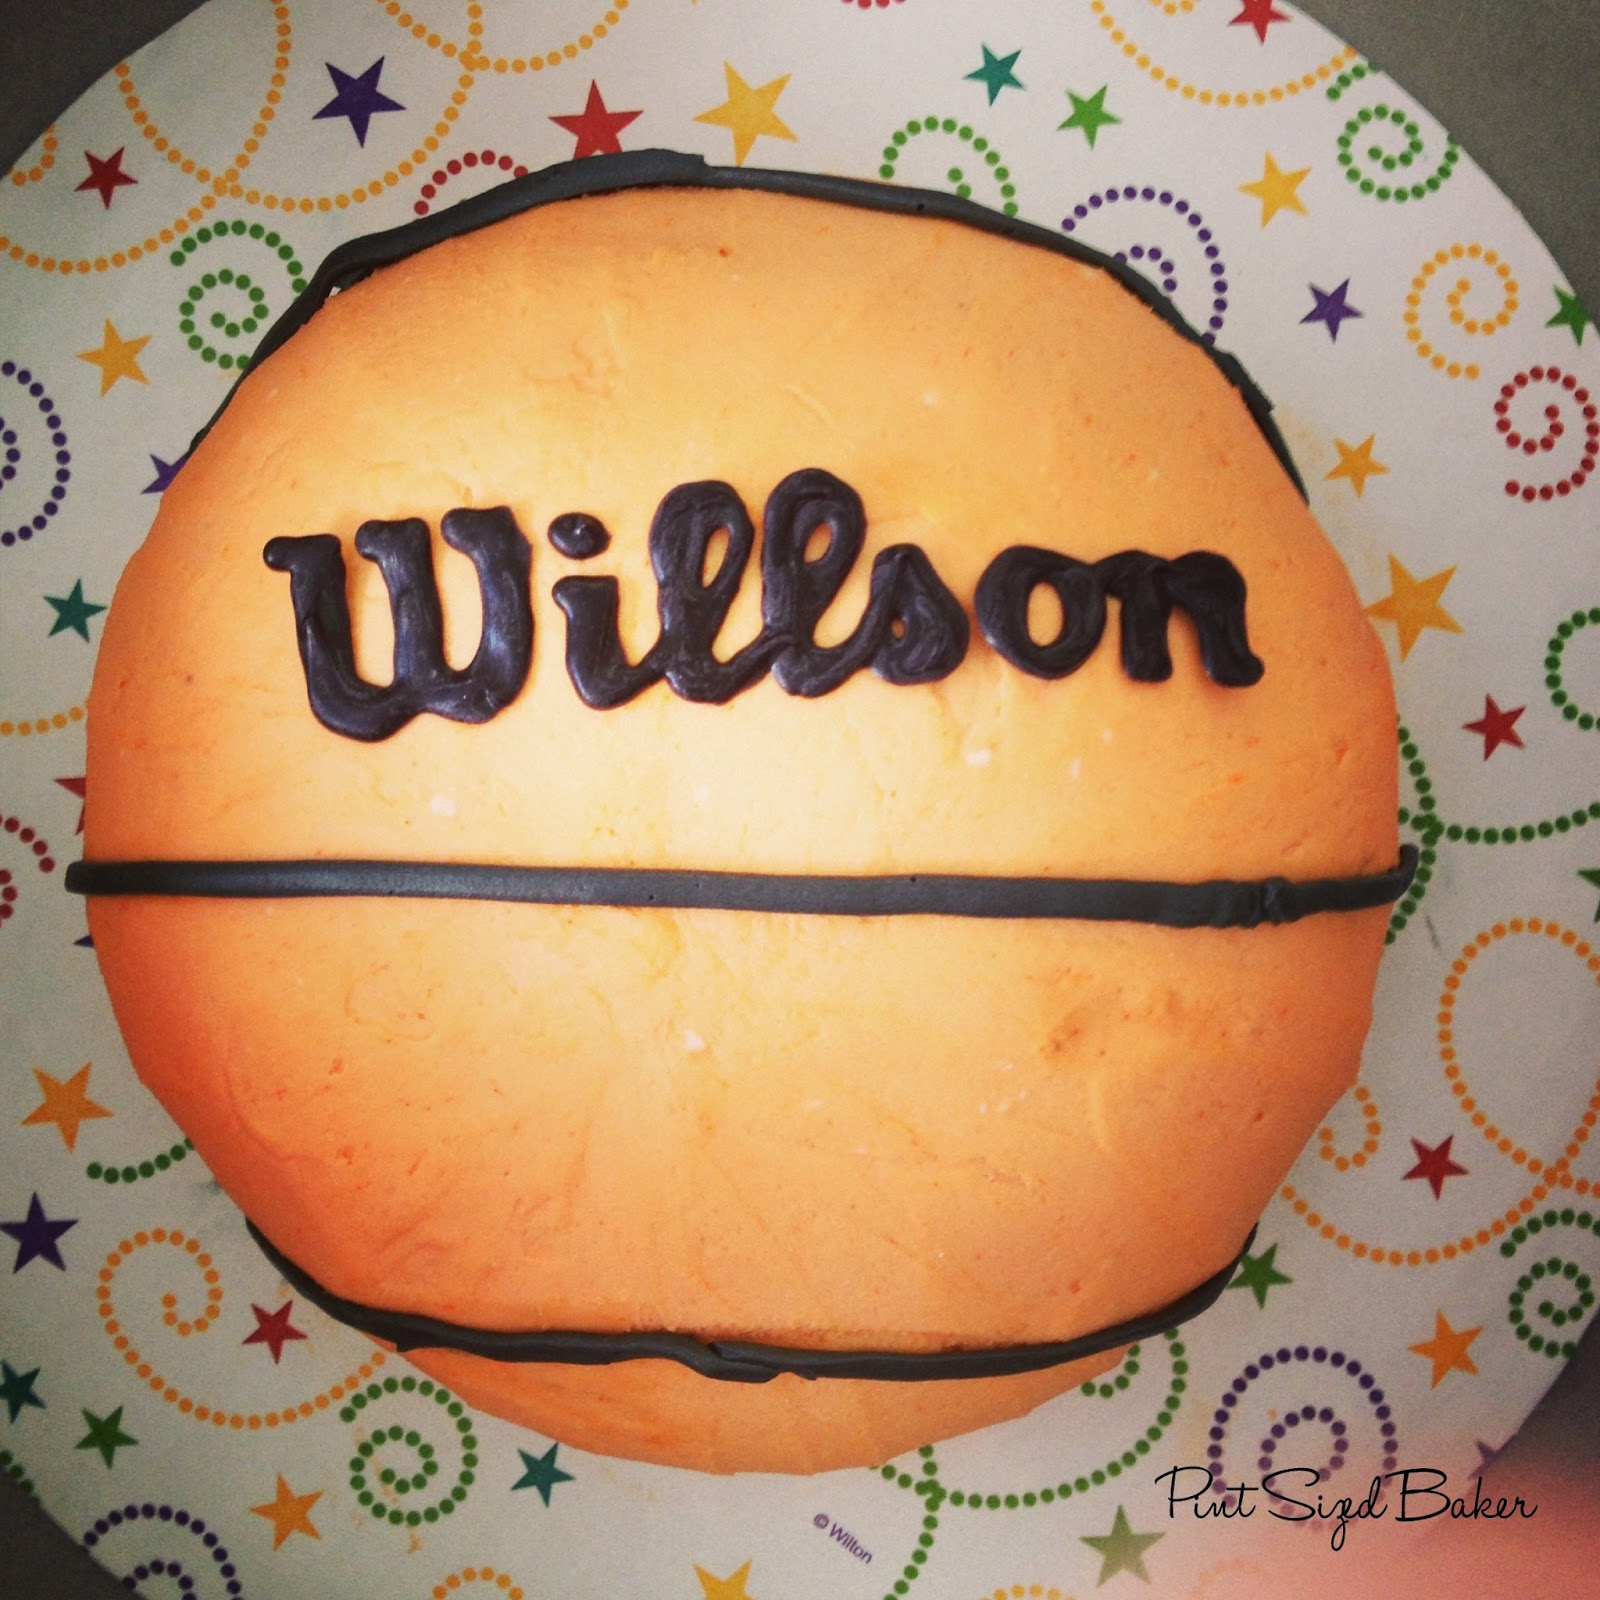 Lakers Jersey and Basketball Cake Pint Sized Baker